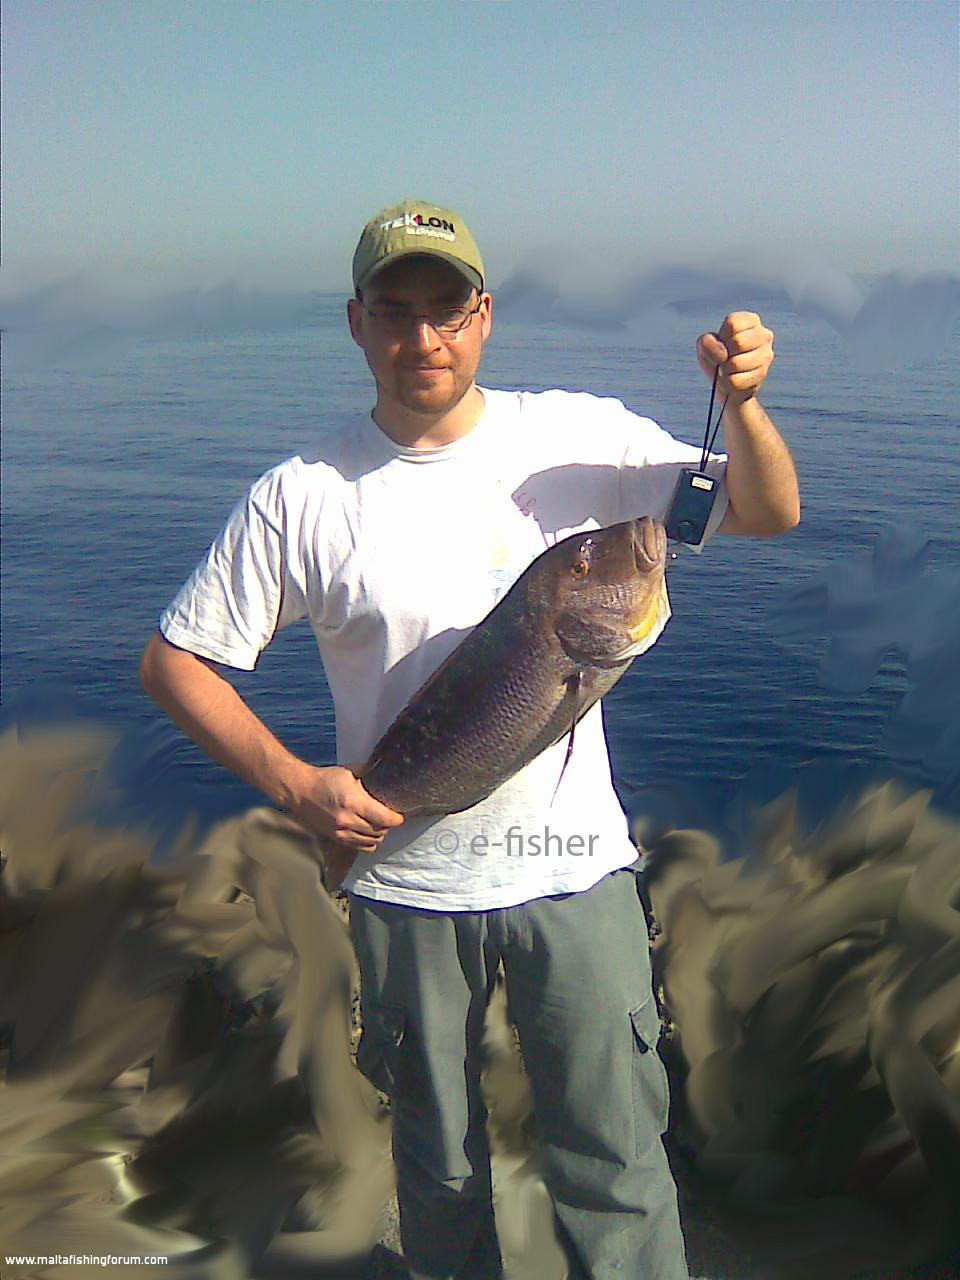 Malta fishing forum a 4 2 kg dentex caught whilst for Sa fishing 5 for 15